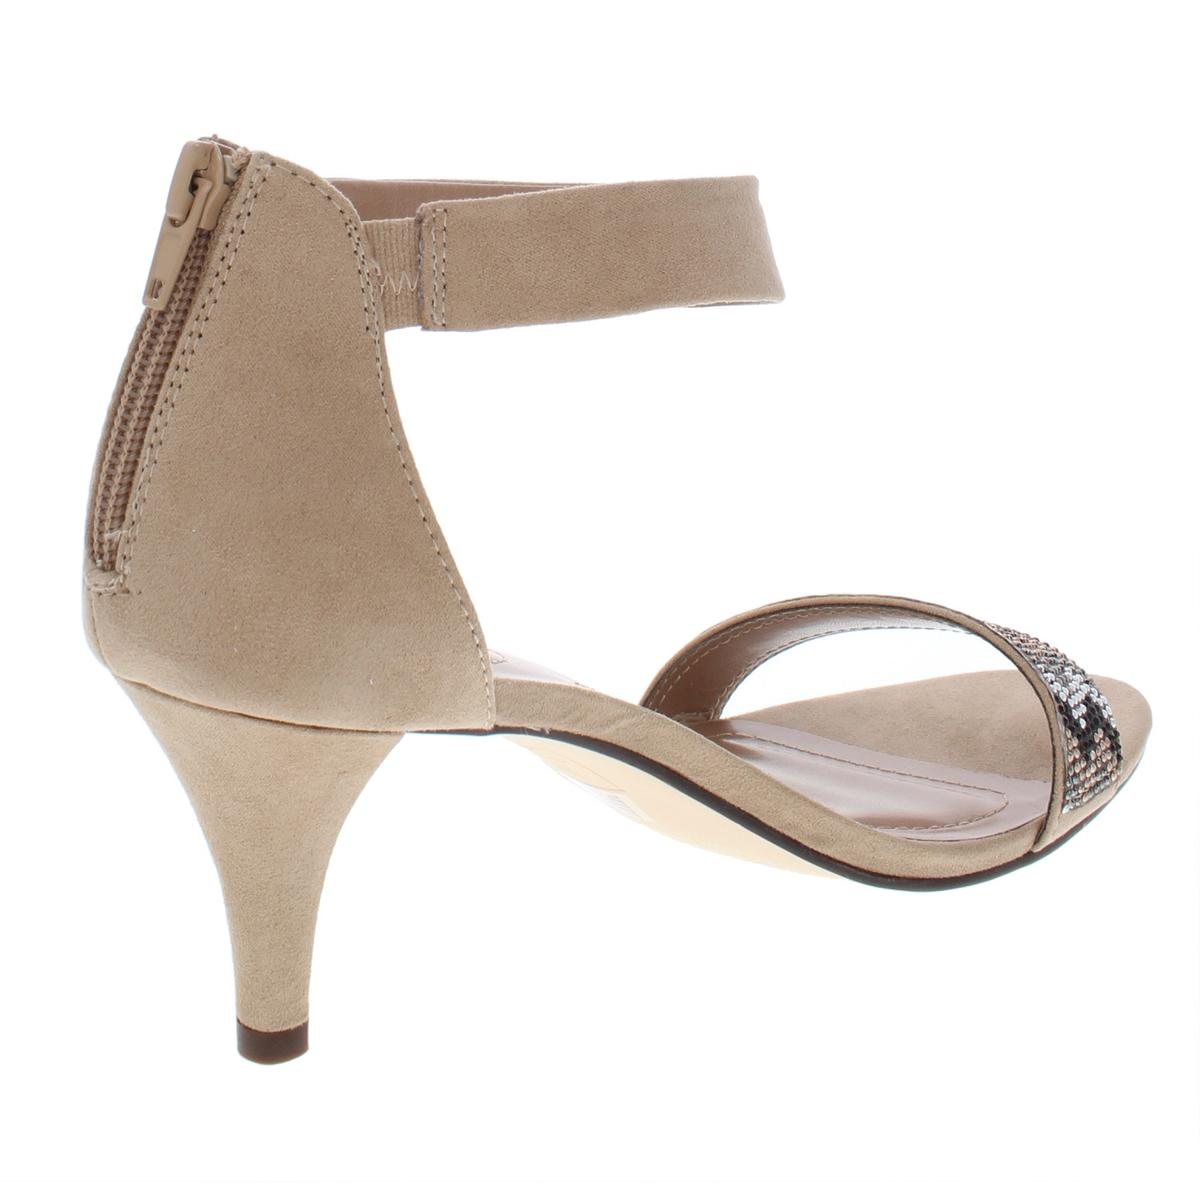 Style-amp-Co-Womens-Phillys-Padded-Insole-Open-Toe-Evening-Heels-Shoes-BHFO-5772 thumbnail 6